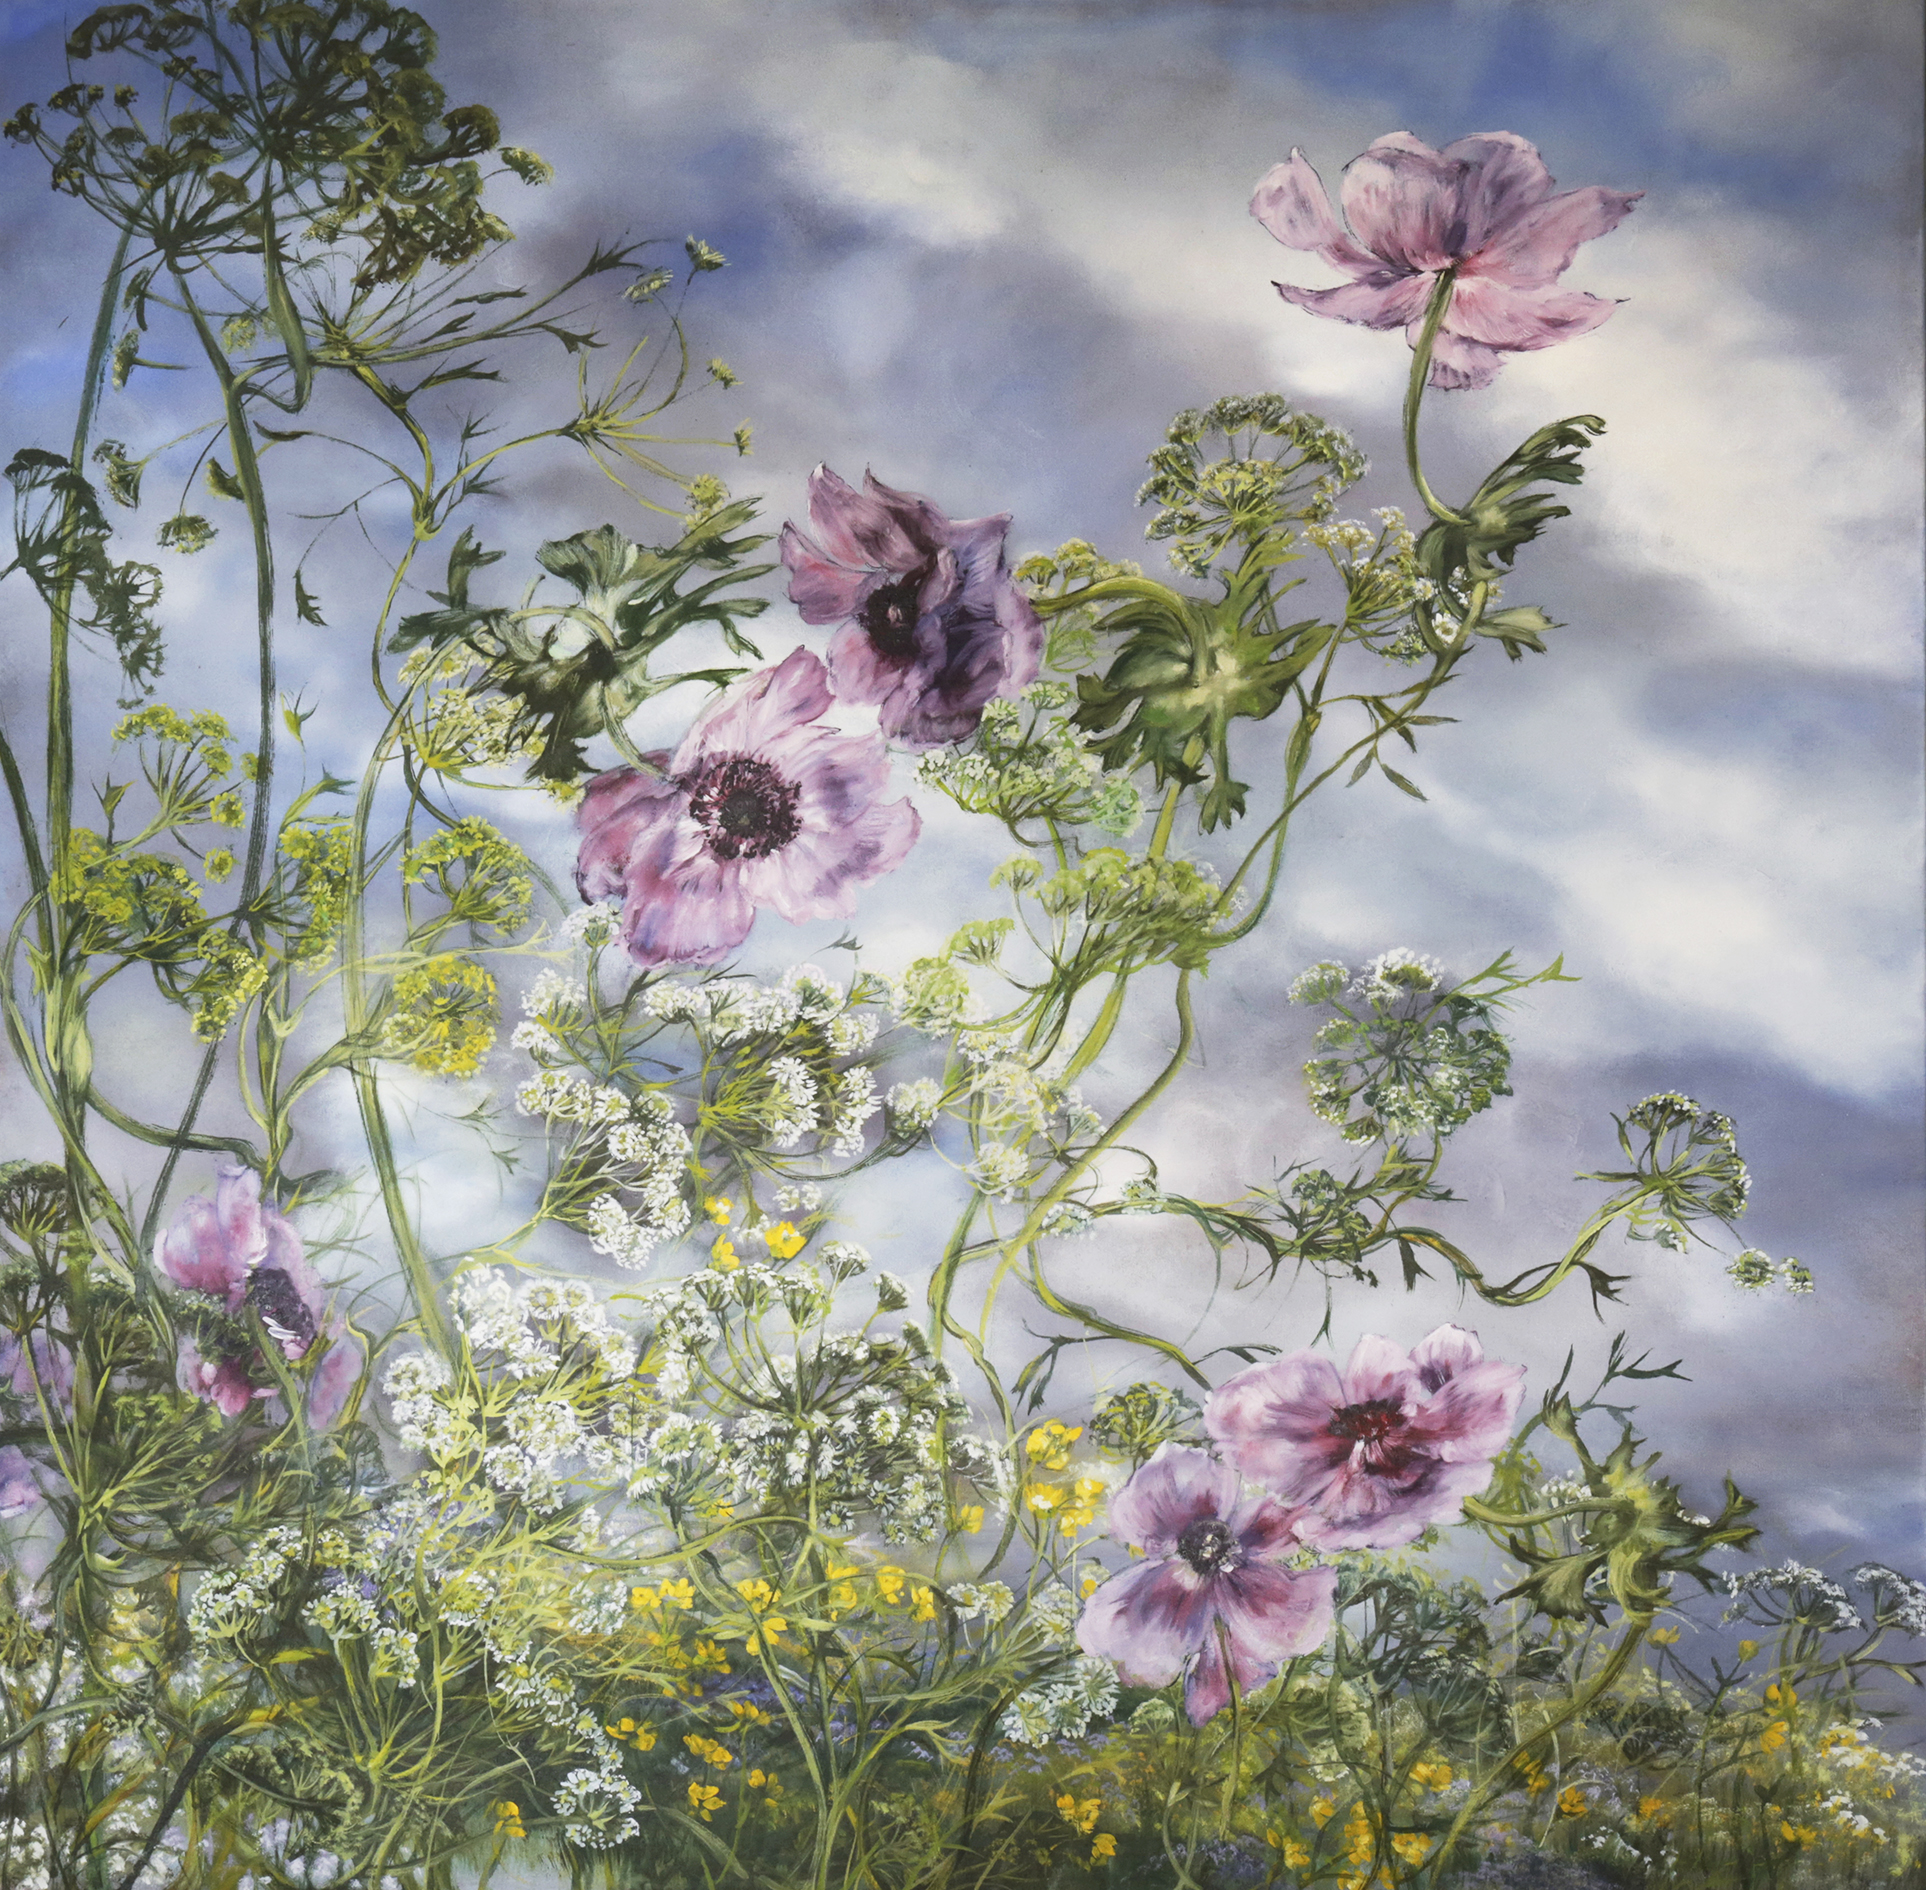 Claire Basler, 2019